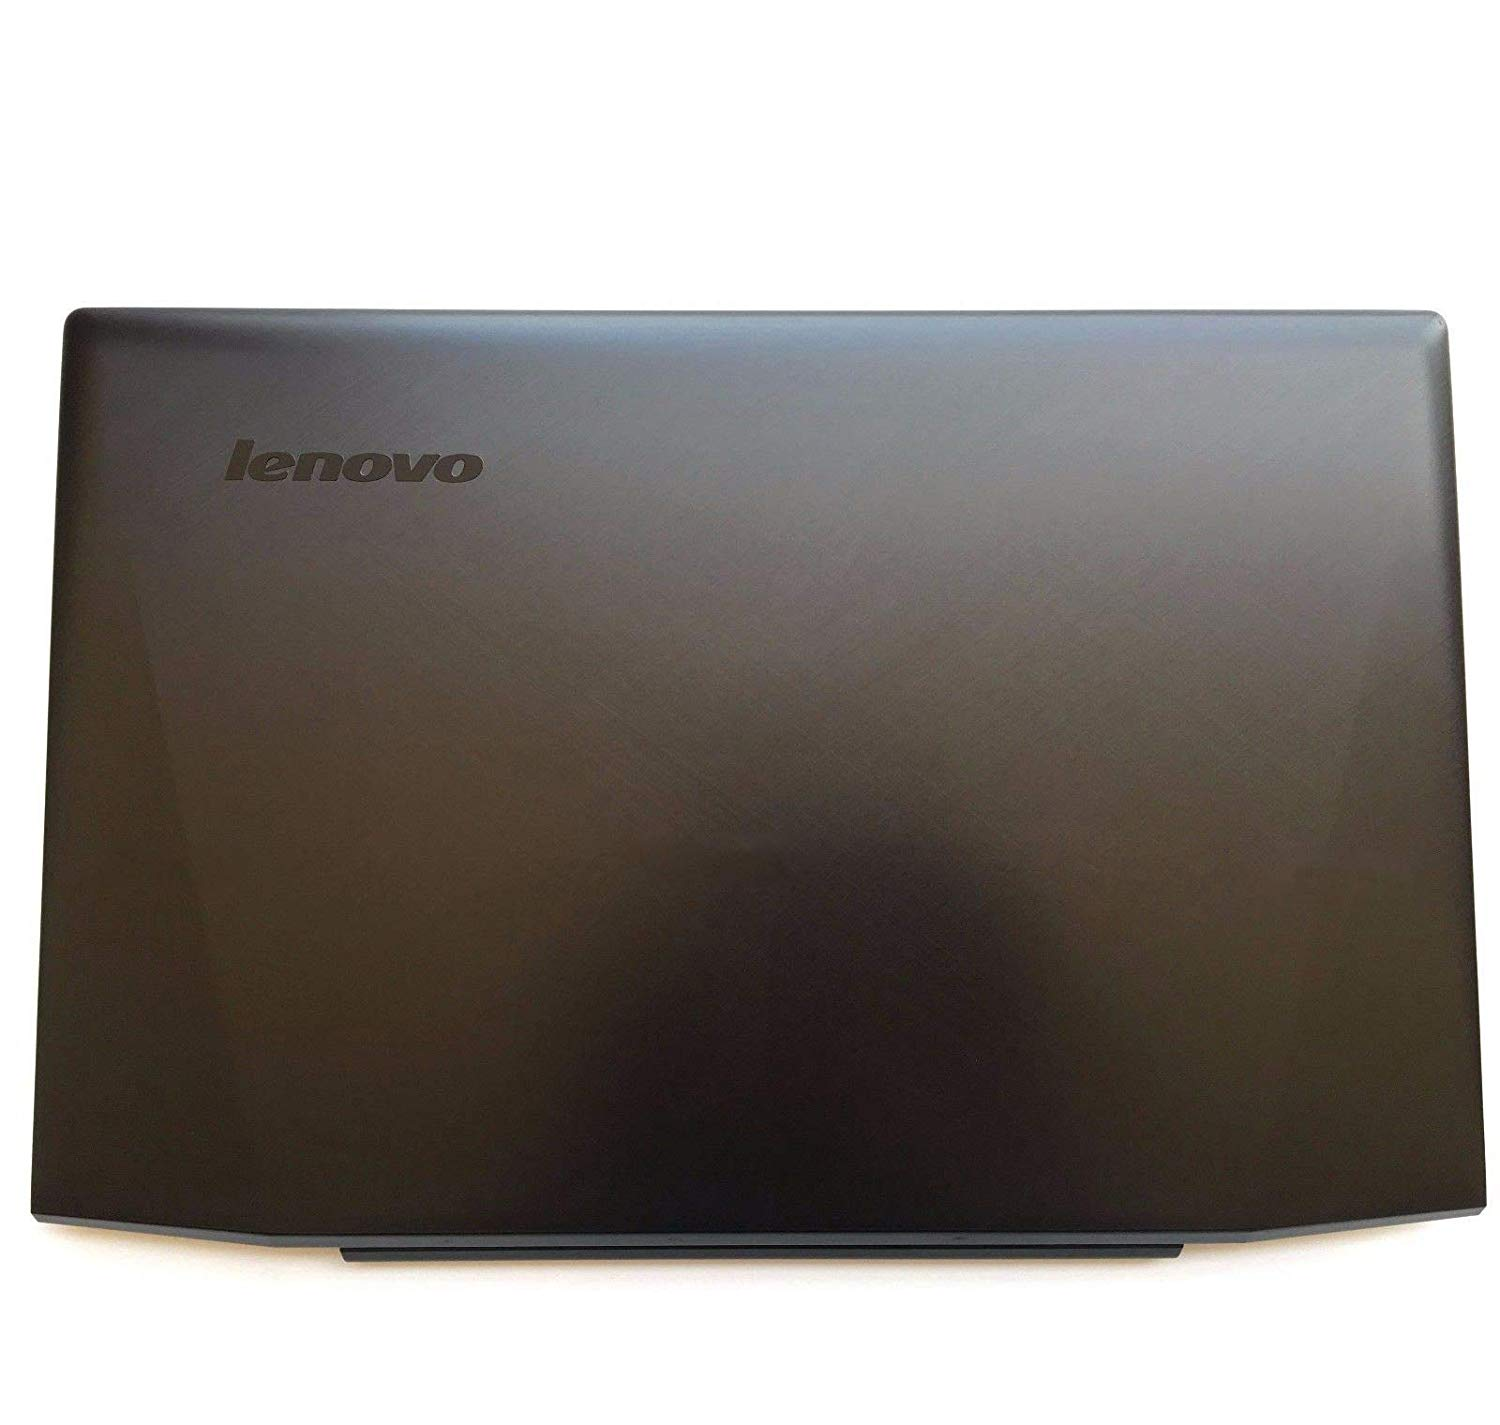 Capac display Lenovo Y5070 cu touch  am14r000300